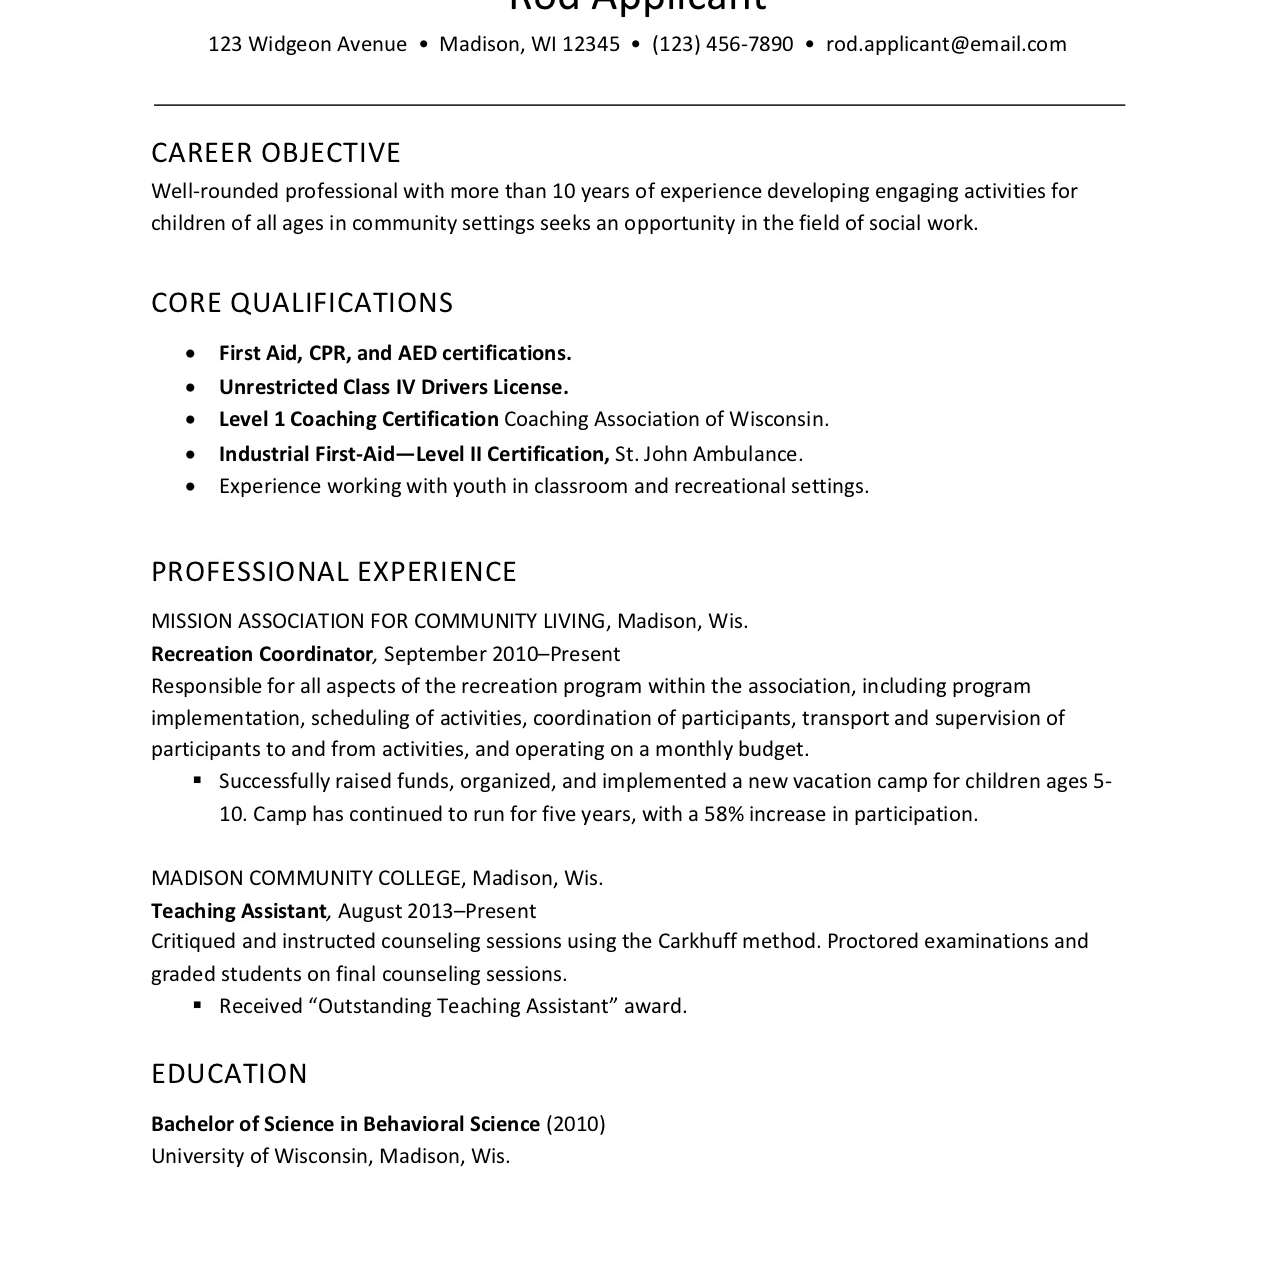 resume example for childcare social services worker experience working with youth import Resume Experience Working With Youth Resume